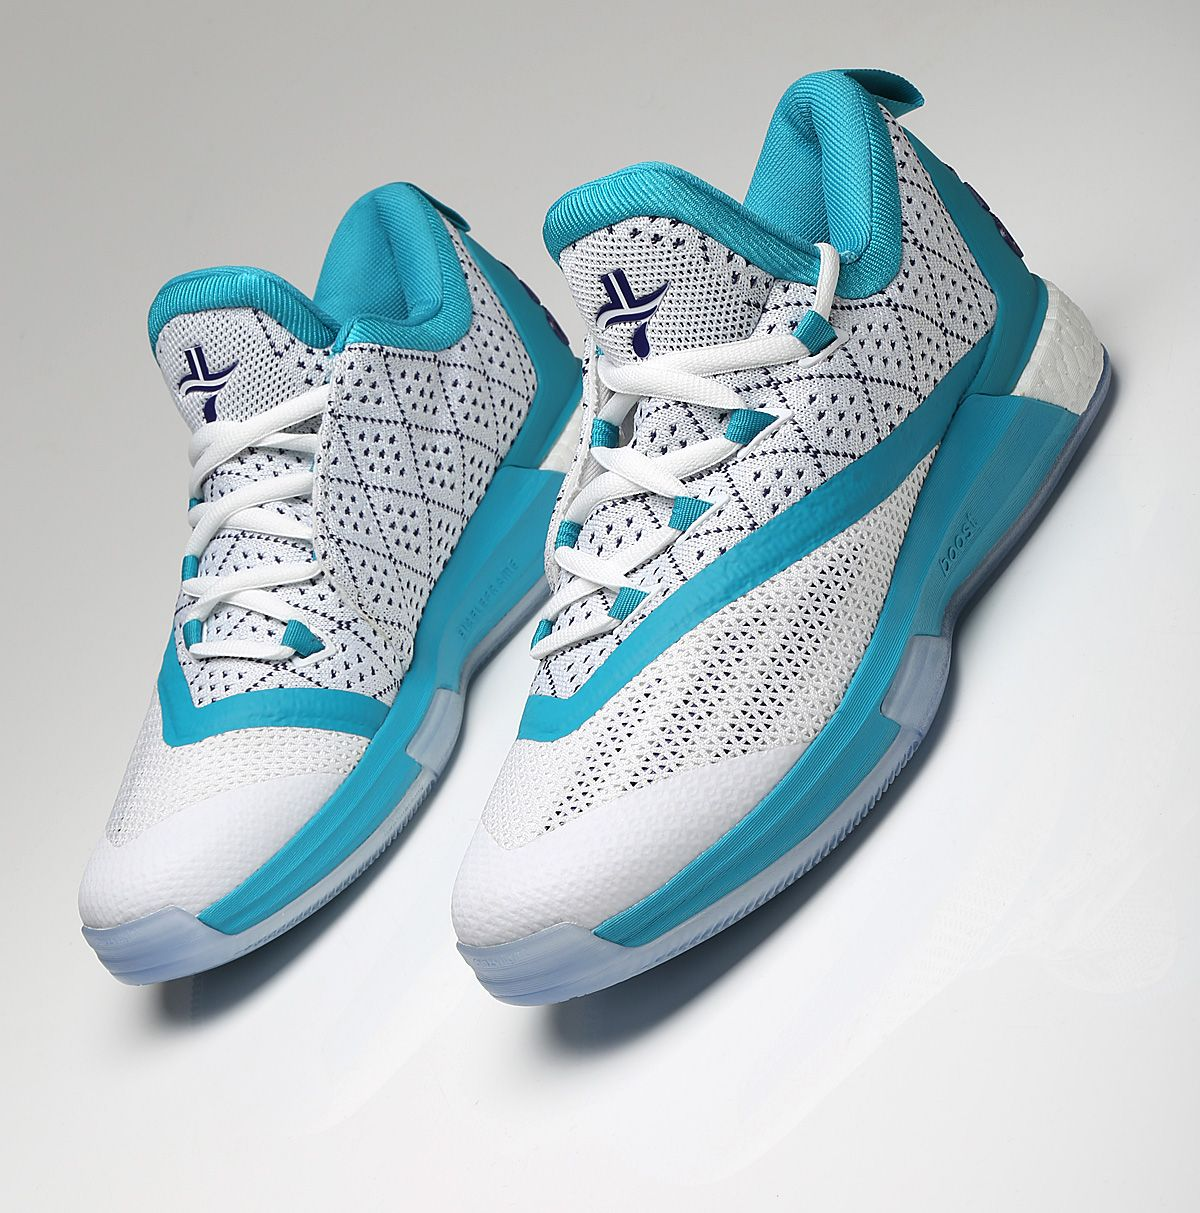 e1951bec121 adidas Crazylight Boost 2.5 'Jeremy Lin' | Kicks | Jeremy lin ...